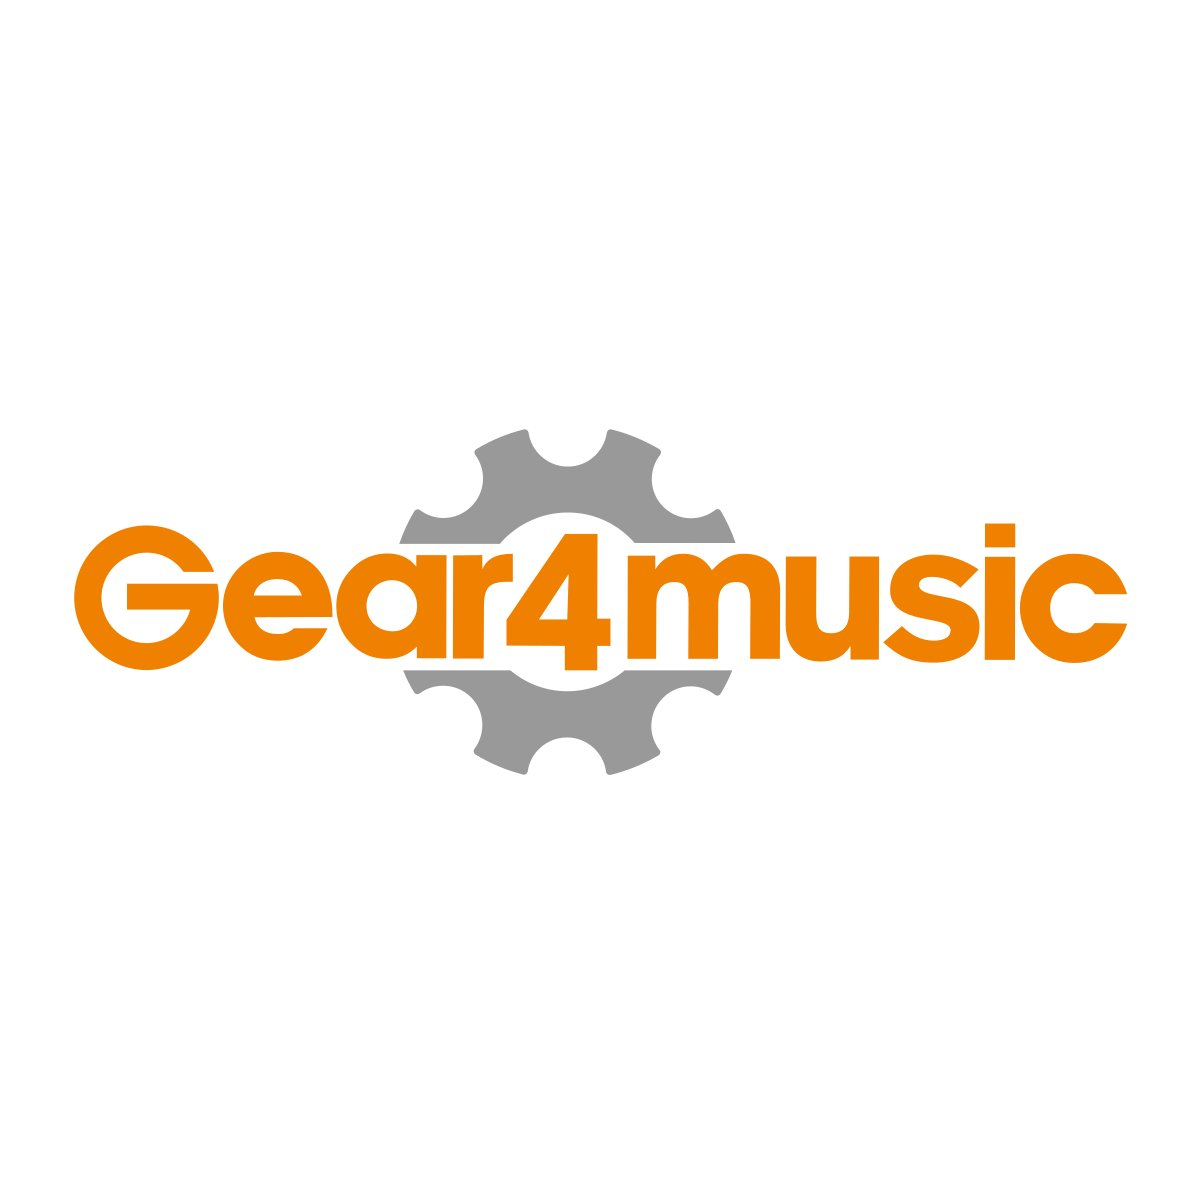 behringer x18 x air digital ipad tablet mixer at gear4music. Black Bedroom Furniture Sets. Home Design Ideas